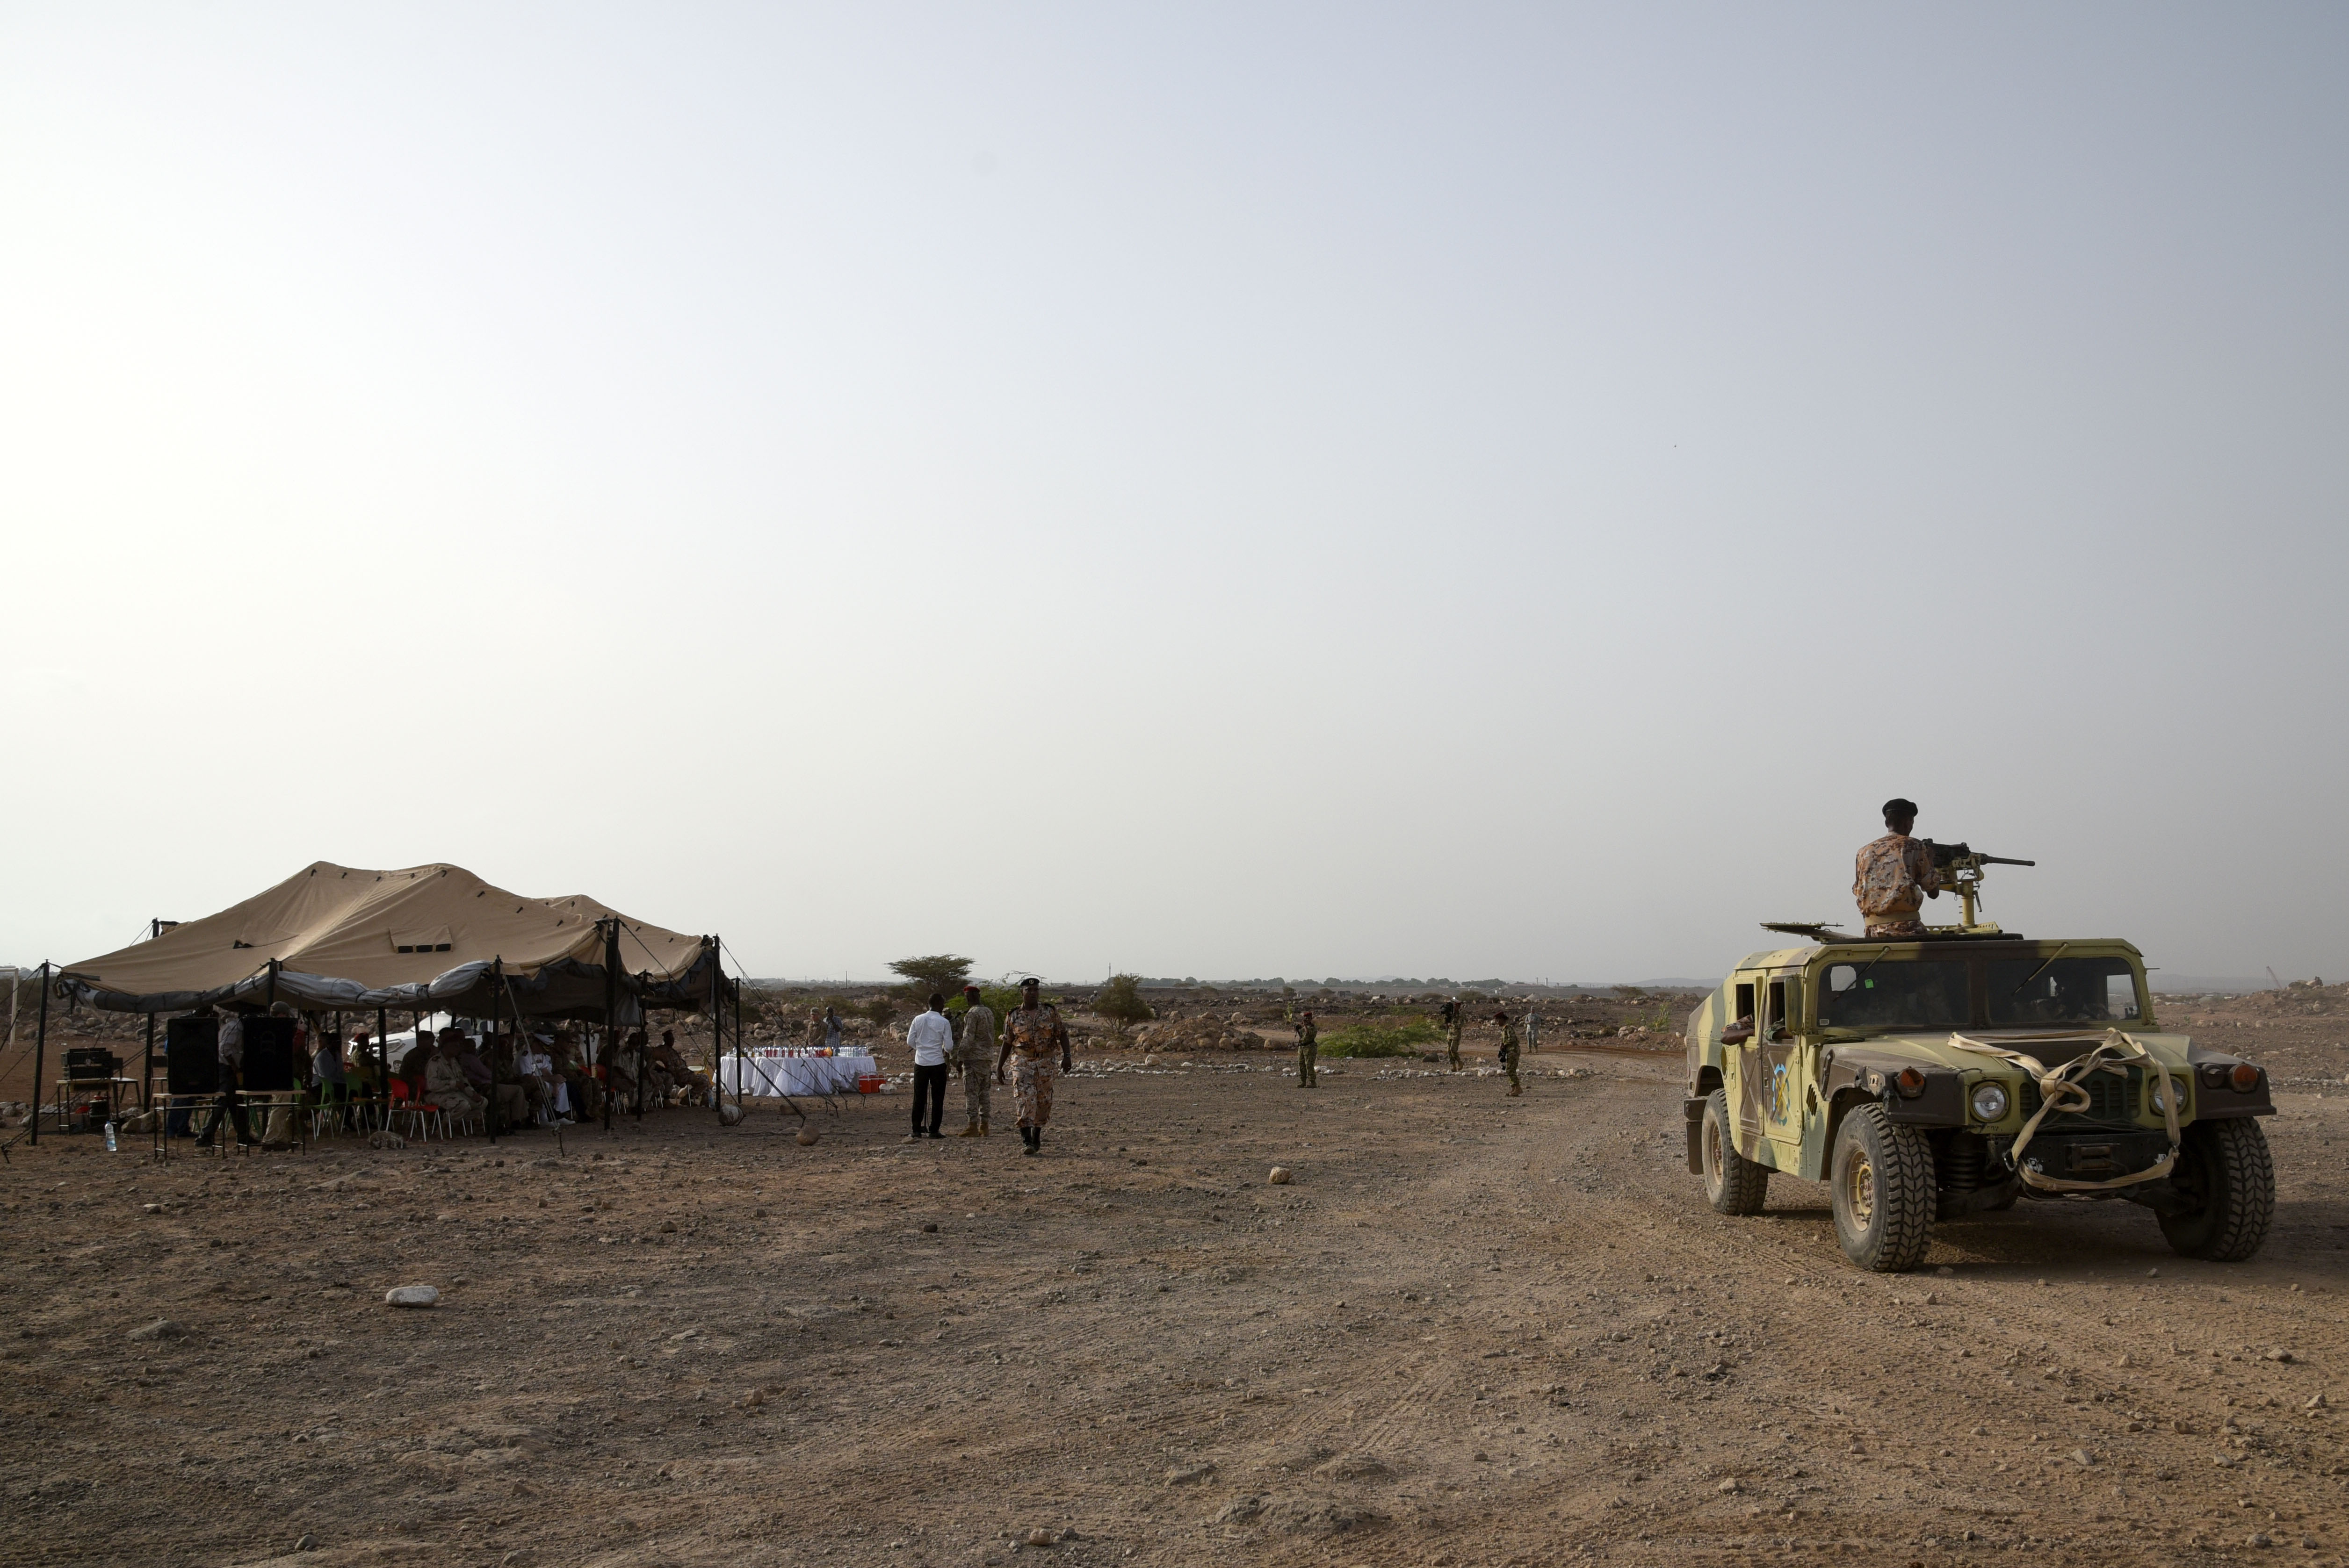 CAMP CHEIK OSMAN, Djibouti – Djiboutian Armed Forces(FAD) Soldiers demonstrate the collective skills they learned from a five month area logistics training instructed by U.S. Army Regionally Aligned Forces Soldiers at their training graduation, May 19, 2016, at Camp Cheik Osman, Djibouti. Beginning in January 2016, the FAD Soldiers learned basic logistics functions, supply, economy, warehouse operations, maintenance along with rifle marksmanship, convoy operations and heavy weapons. (U.S. Air Force photo by Staff Sgt. Tiffany DeNault)